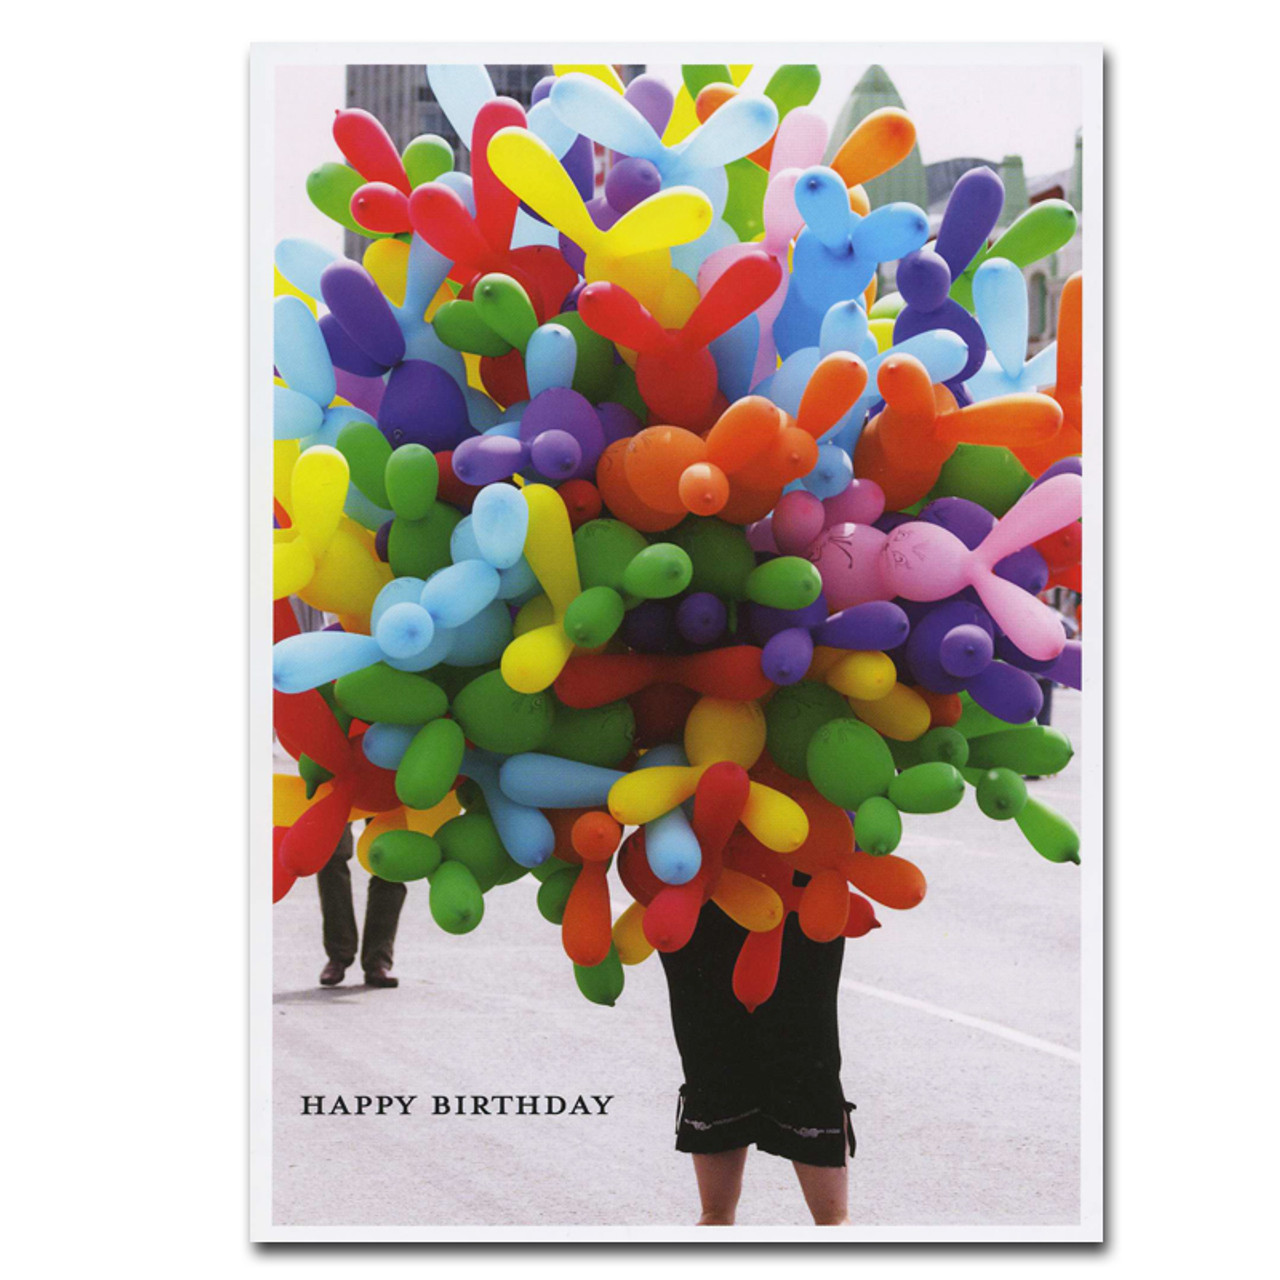 Boxed Business Balloons For Sale Birthday Card Cover Is Photo Of Balloon Vendor With The Text